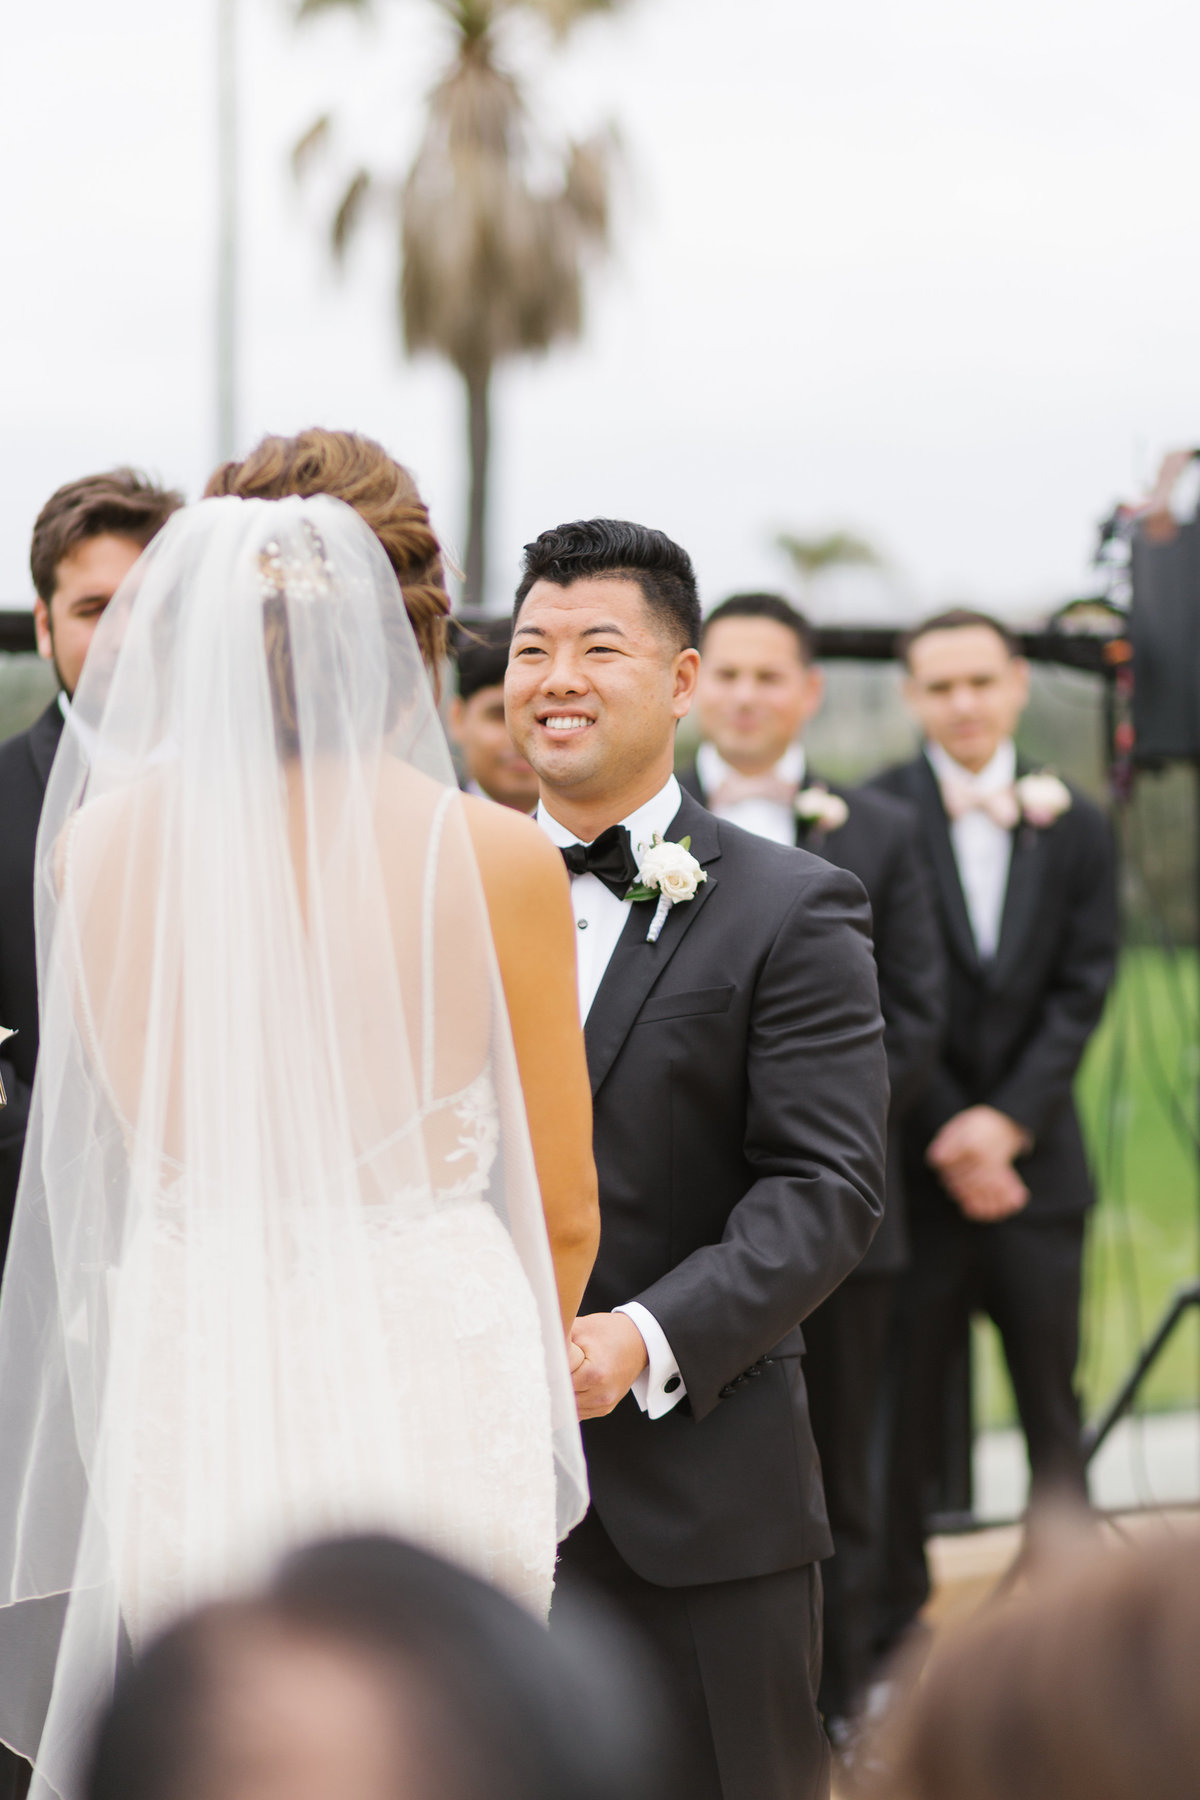 Huntington-Beach-Wedding-The-Venue-23